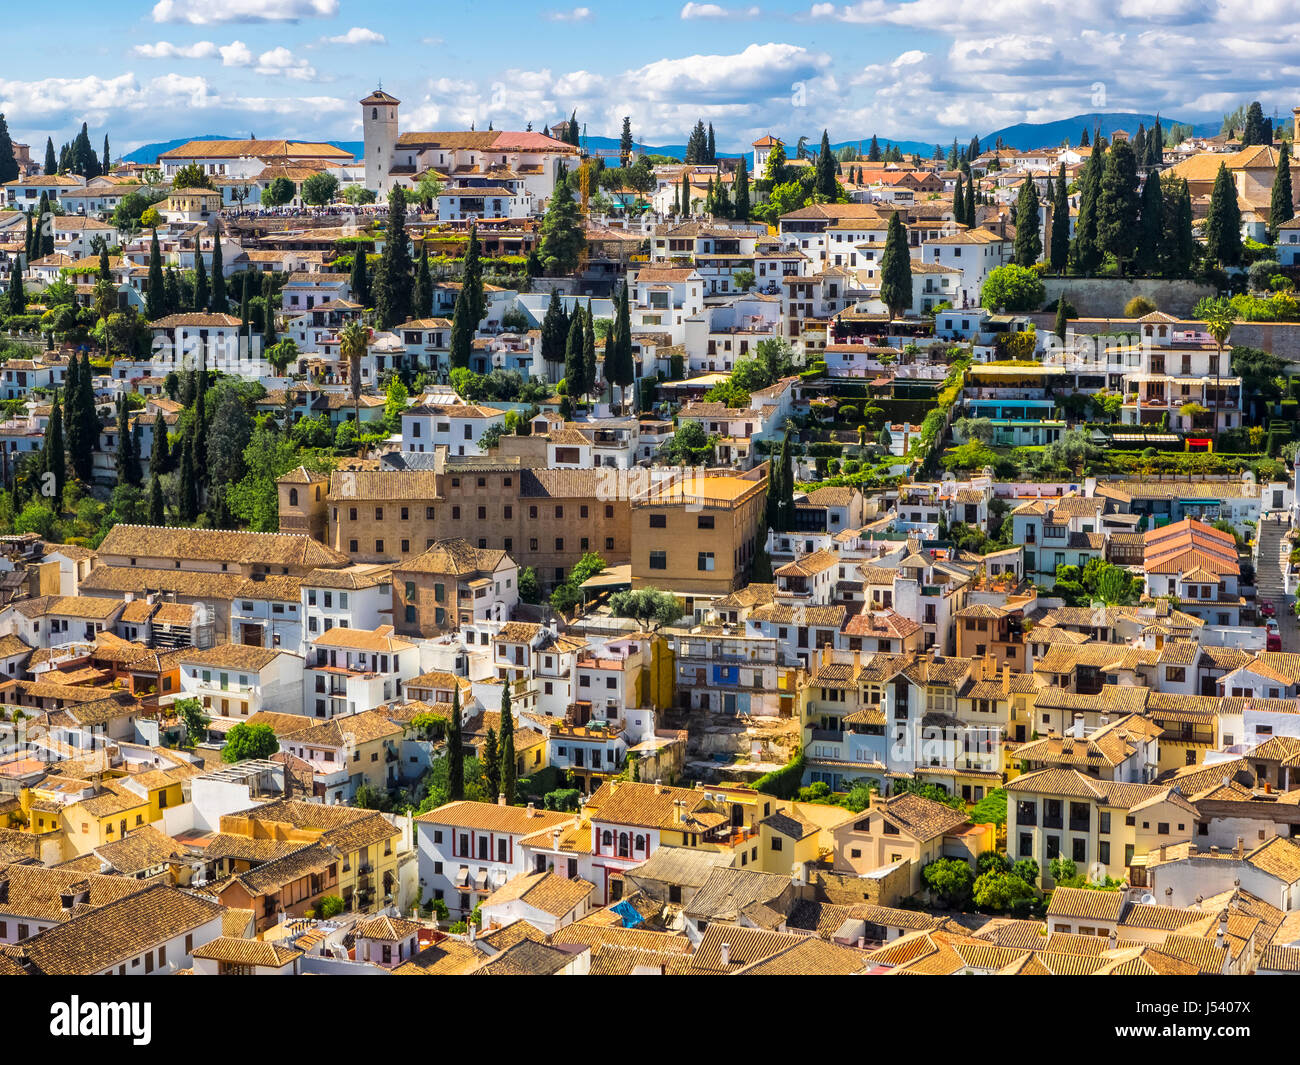 The town of Sacromonte - Stock Image